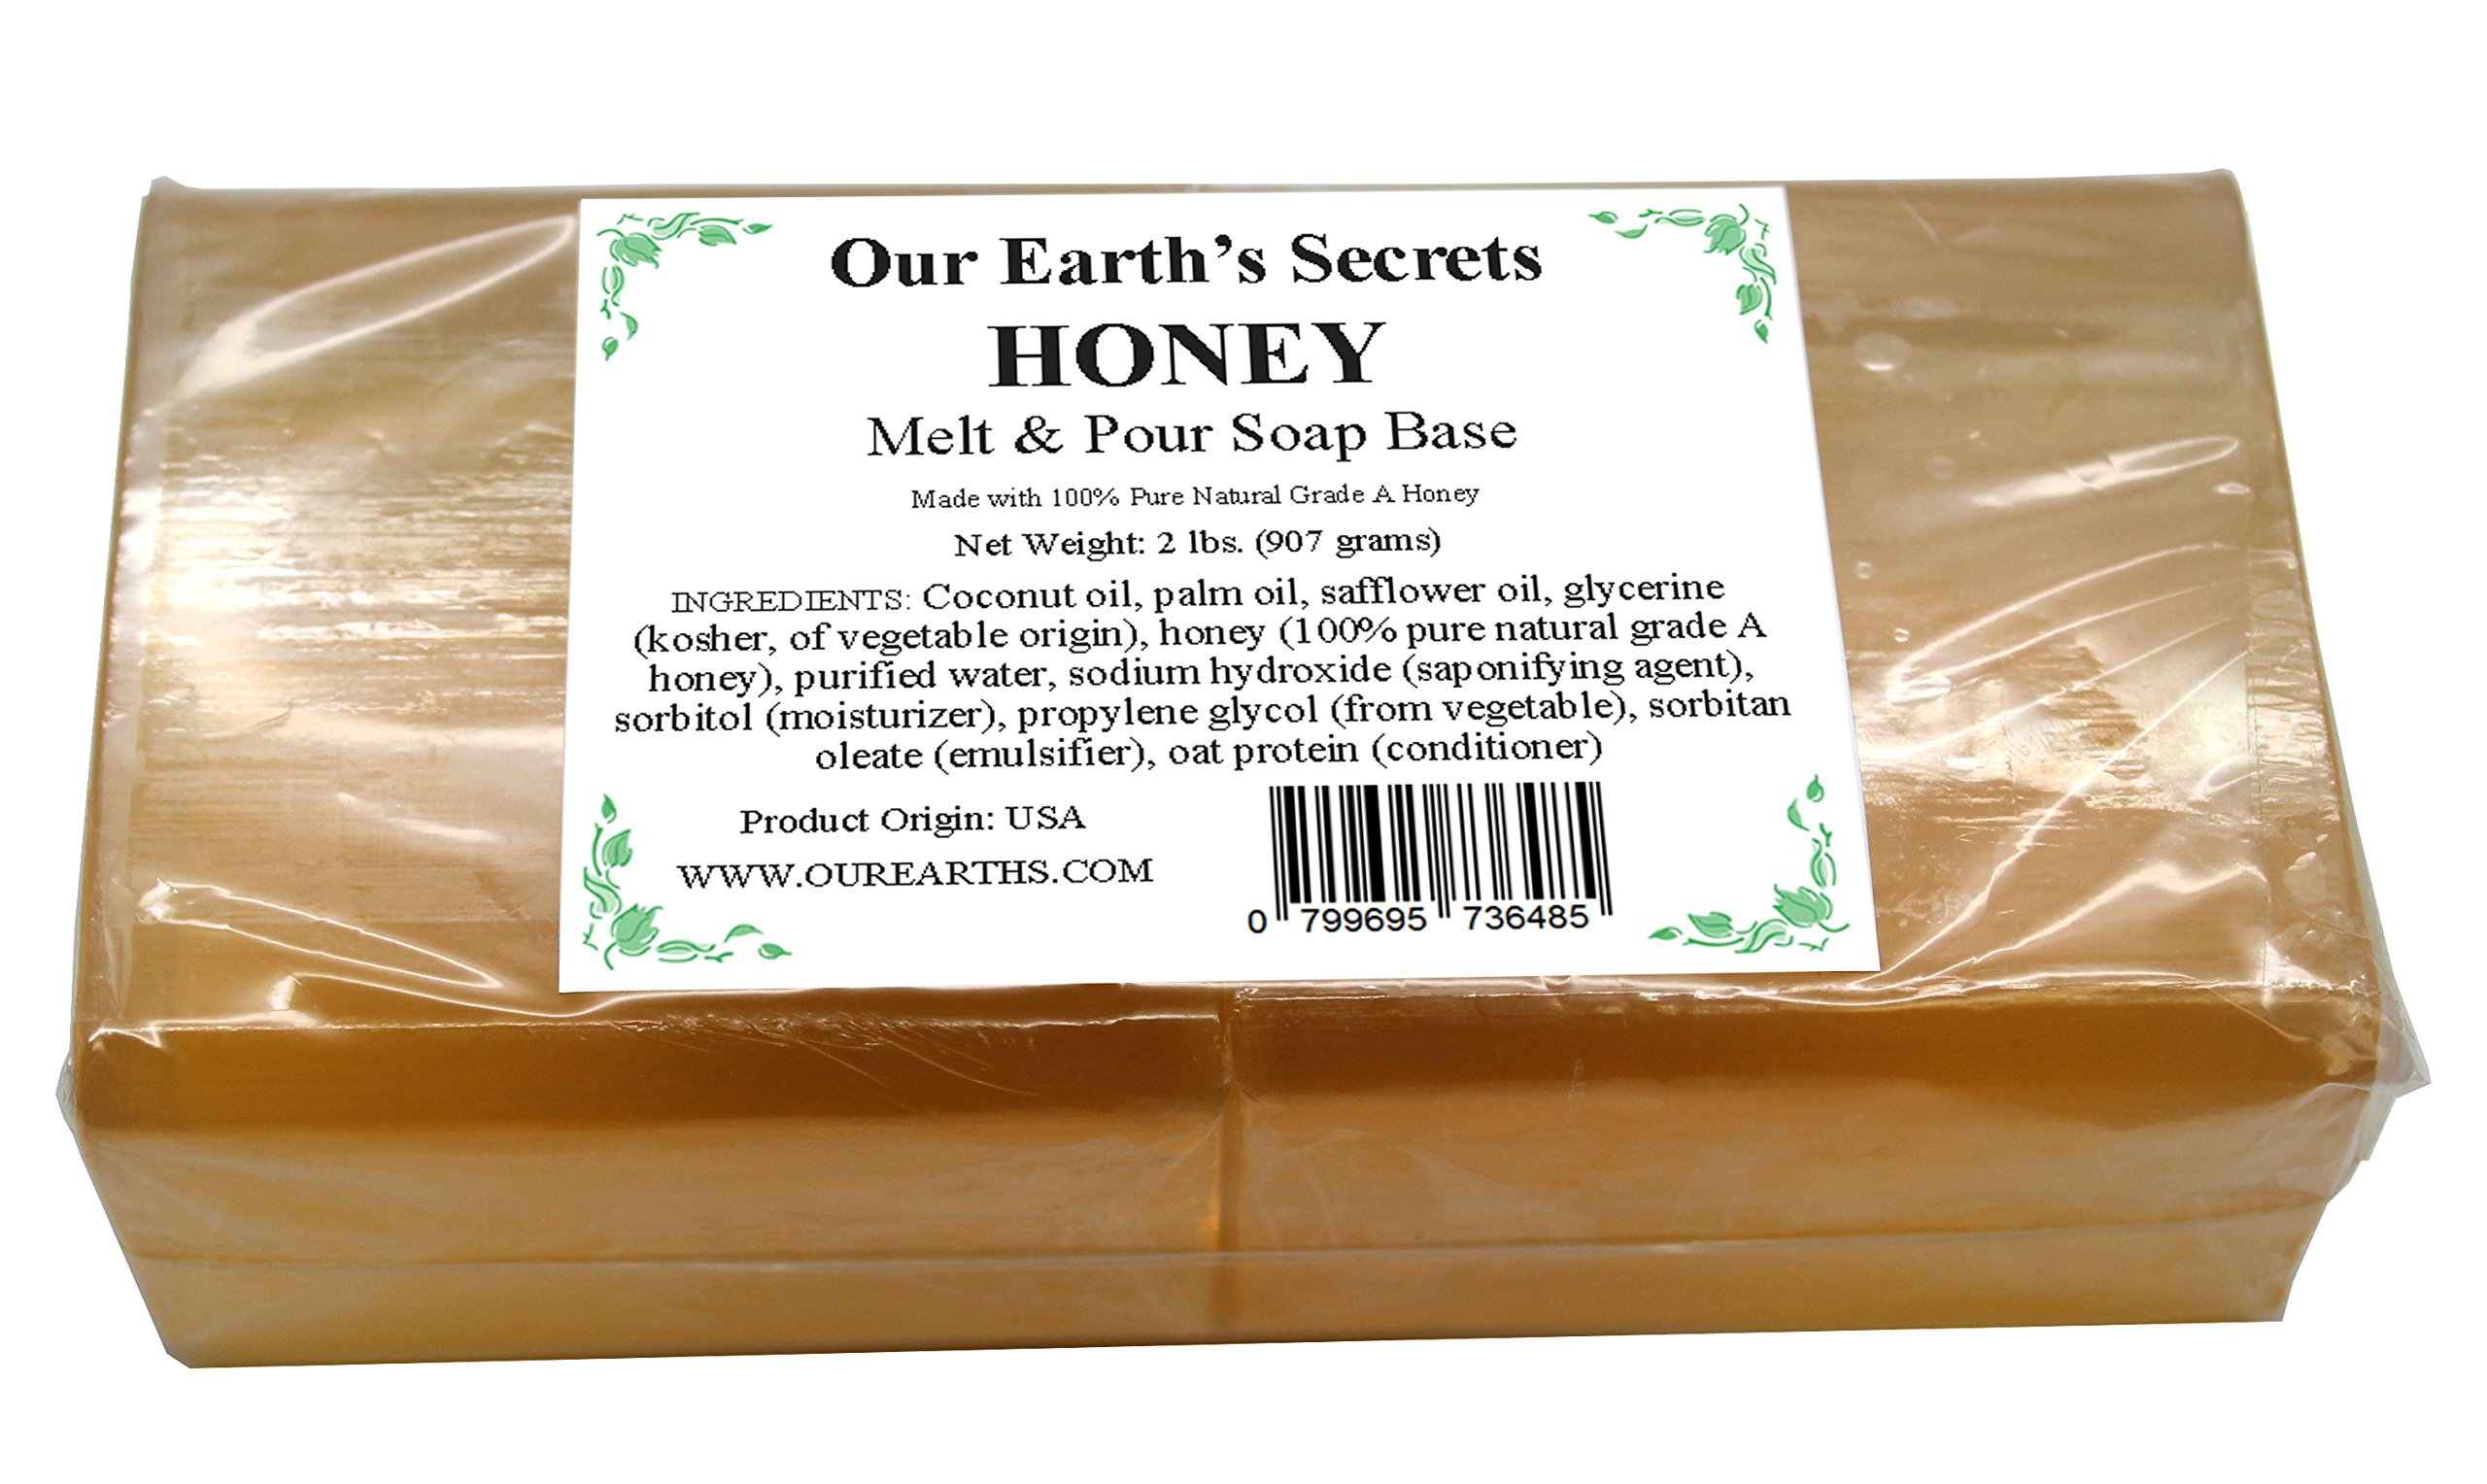 Honey - 2 Lbs Melt and Pour Soap Base - Our Earth's Secrets by Our Earth's Secrets